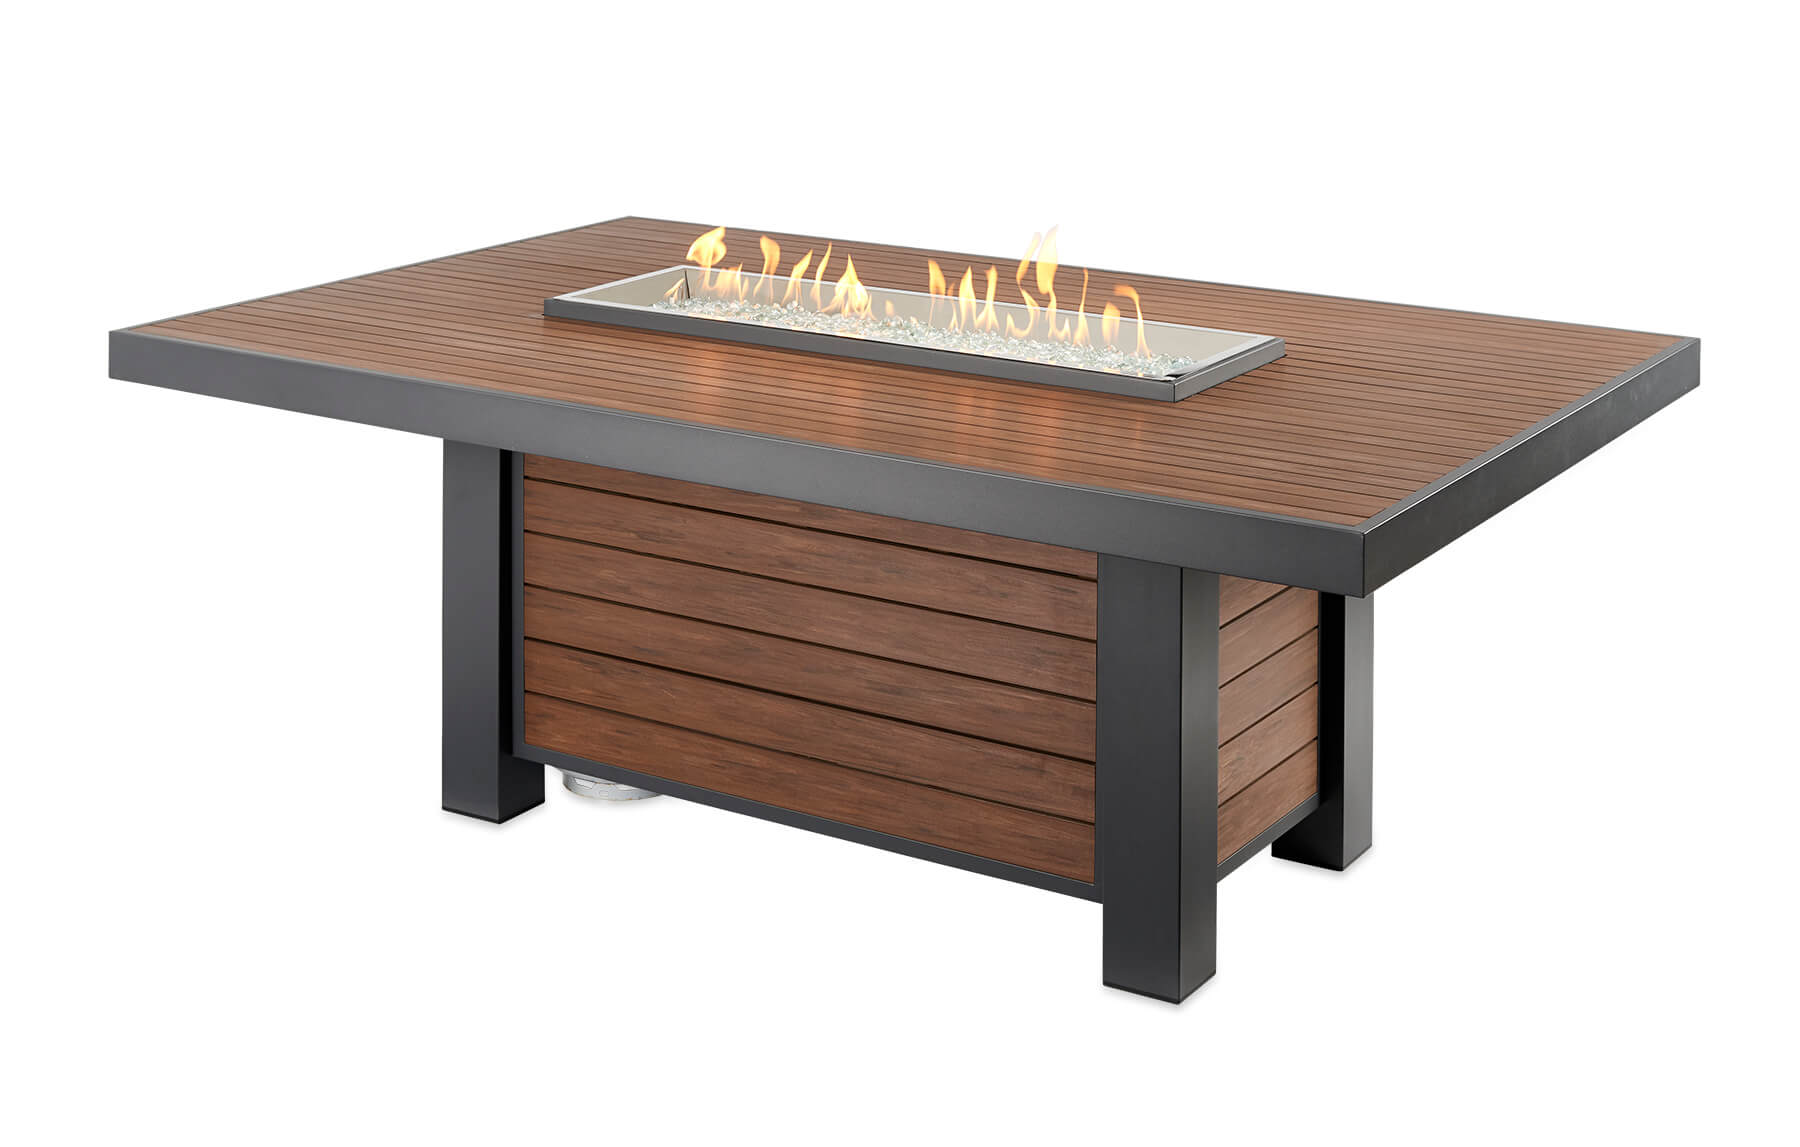 Kenwood Linear Dining Fire Pit Dining Table Cloister